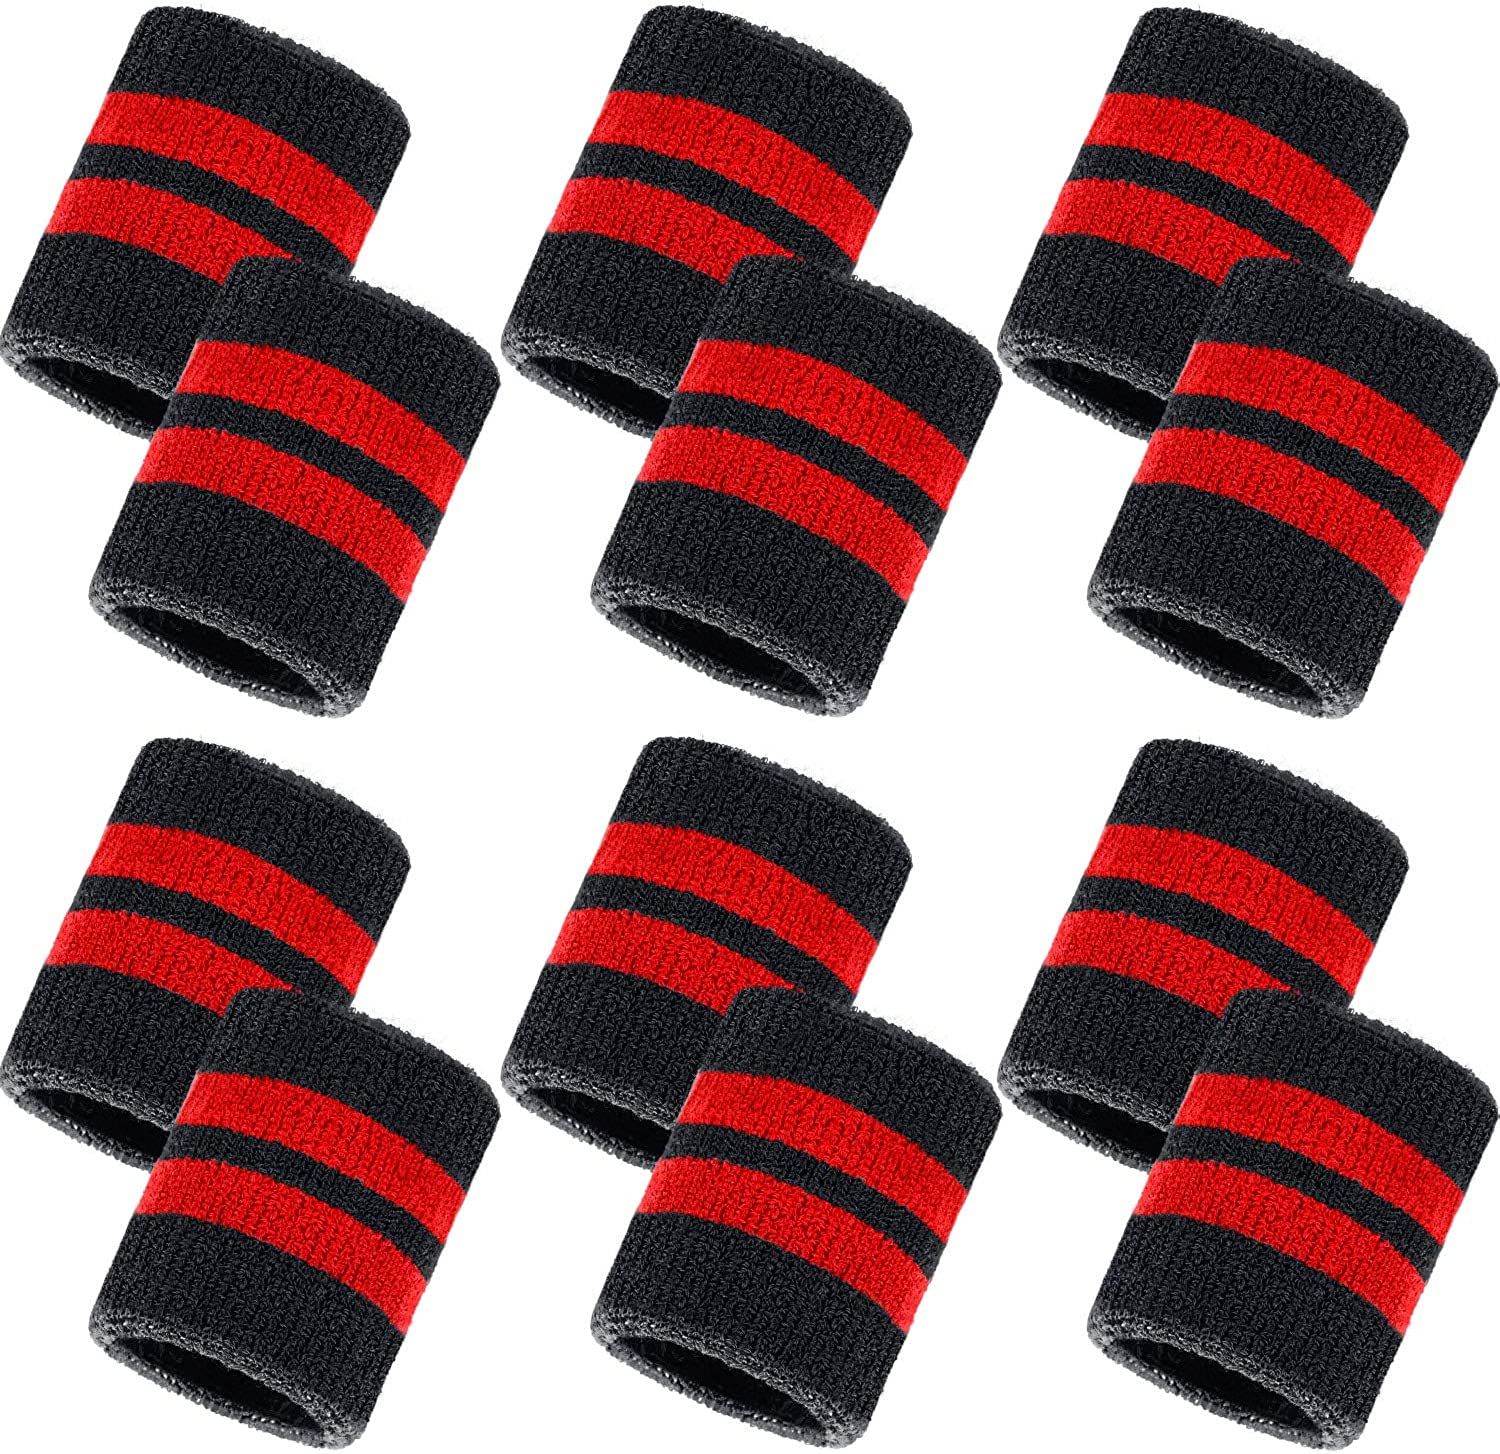 Amazon.com : Bememo 12 Pack Striped Sweatbands Wrist Sports Wristband  Cotton Wrist Band Sweat Band for Men and Women, Good for Tennis,  Basketball, Running, Gym, Working Out : Clothing